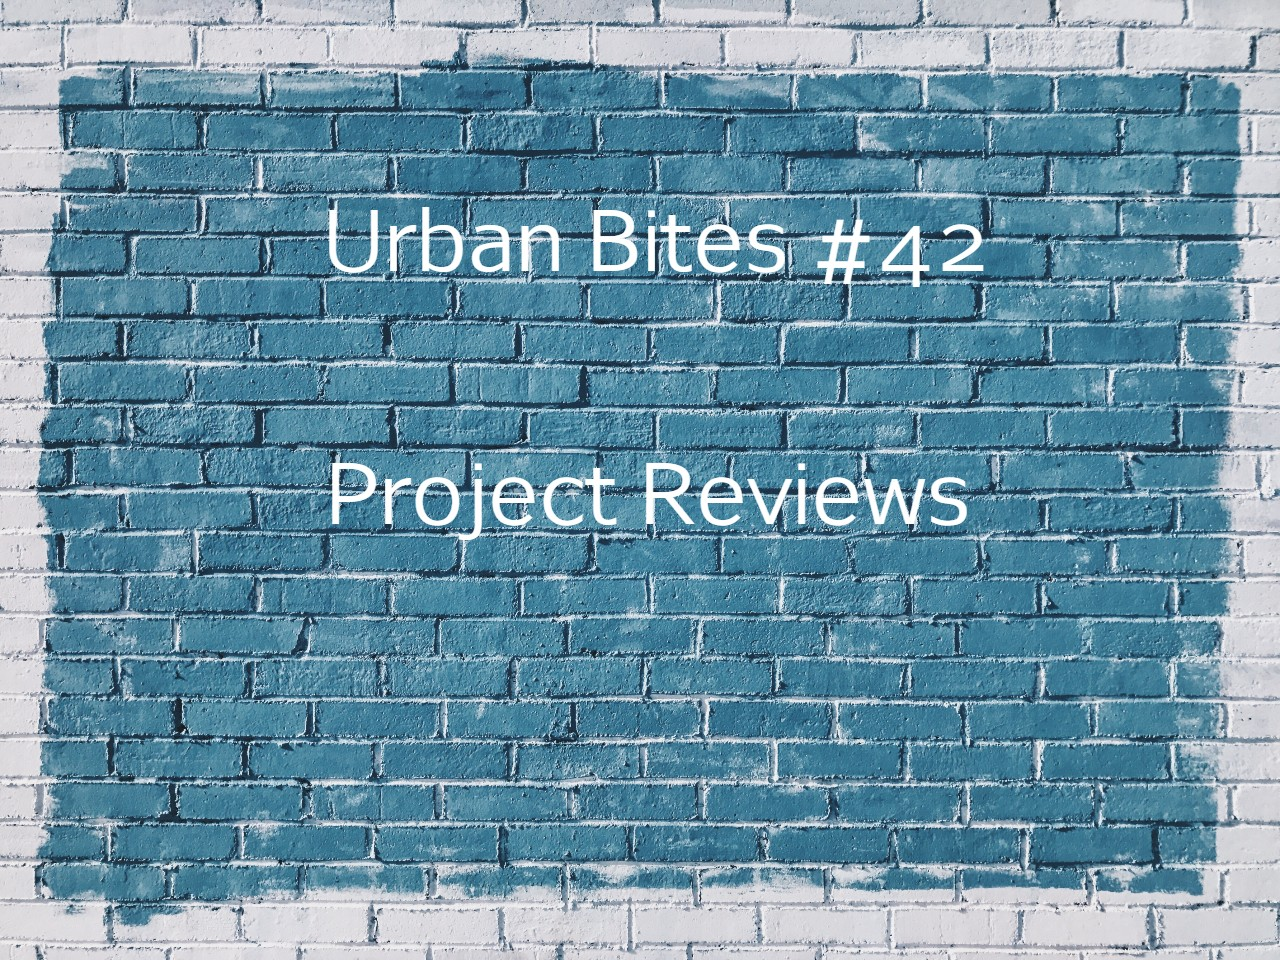 Construction project reviews